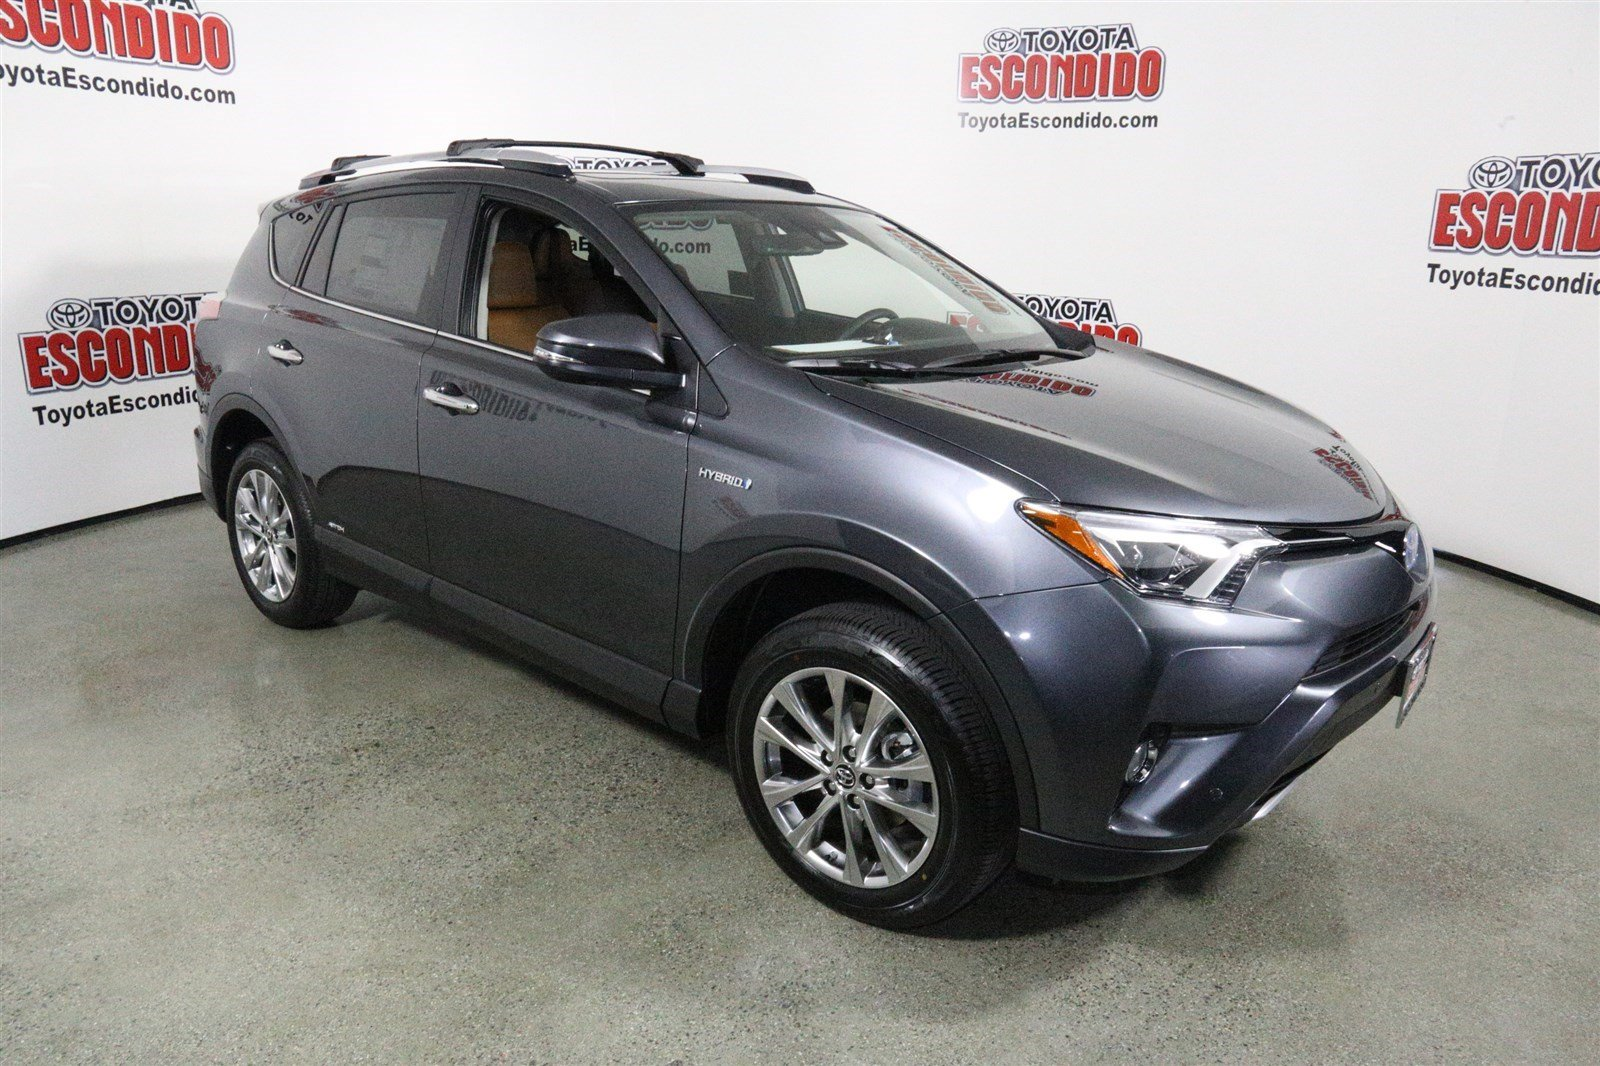 new 2016 toyota rav4 hybrid limited sport utility in escondido 1013270 toyota of escondido. Black Bedroom Furniture Sets. Home Design Ideas